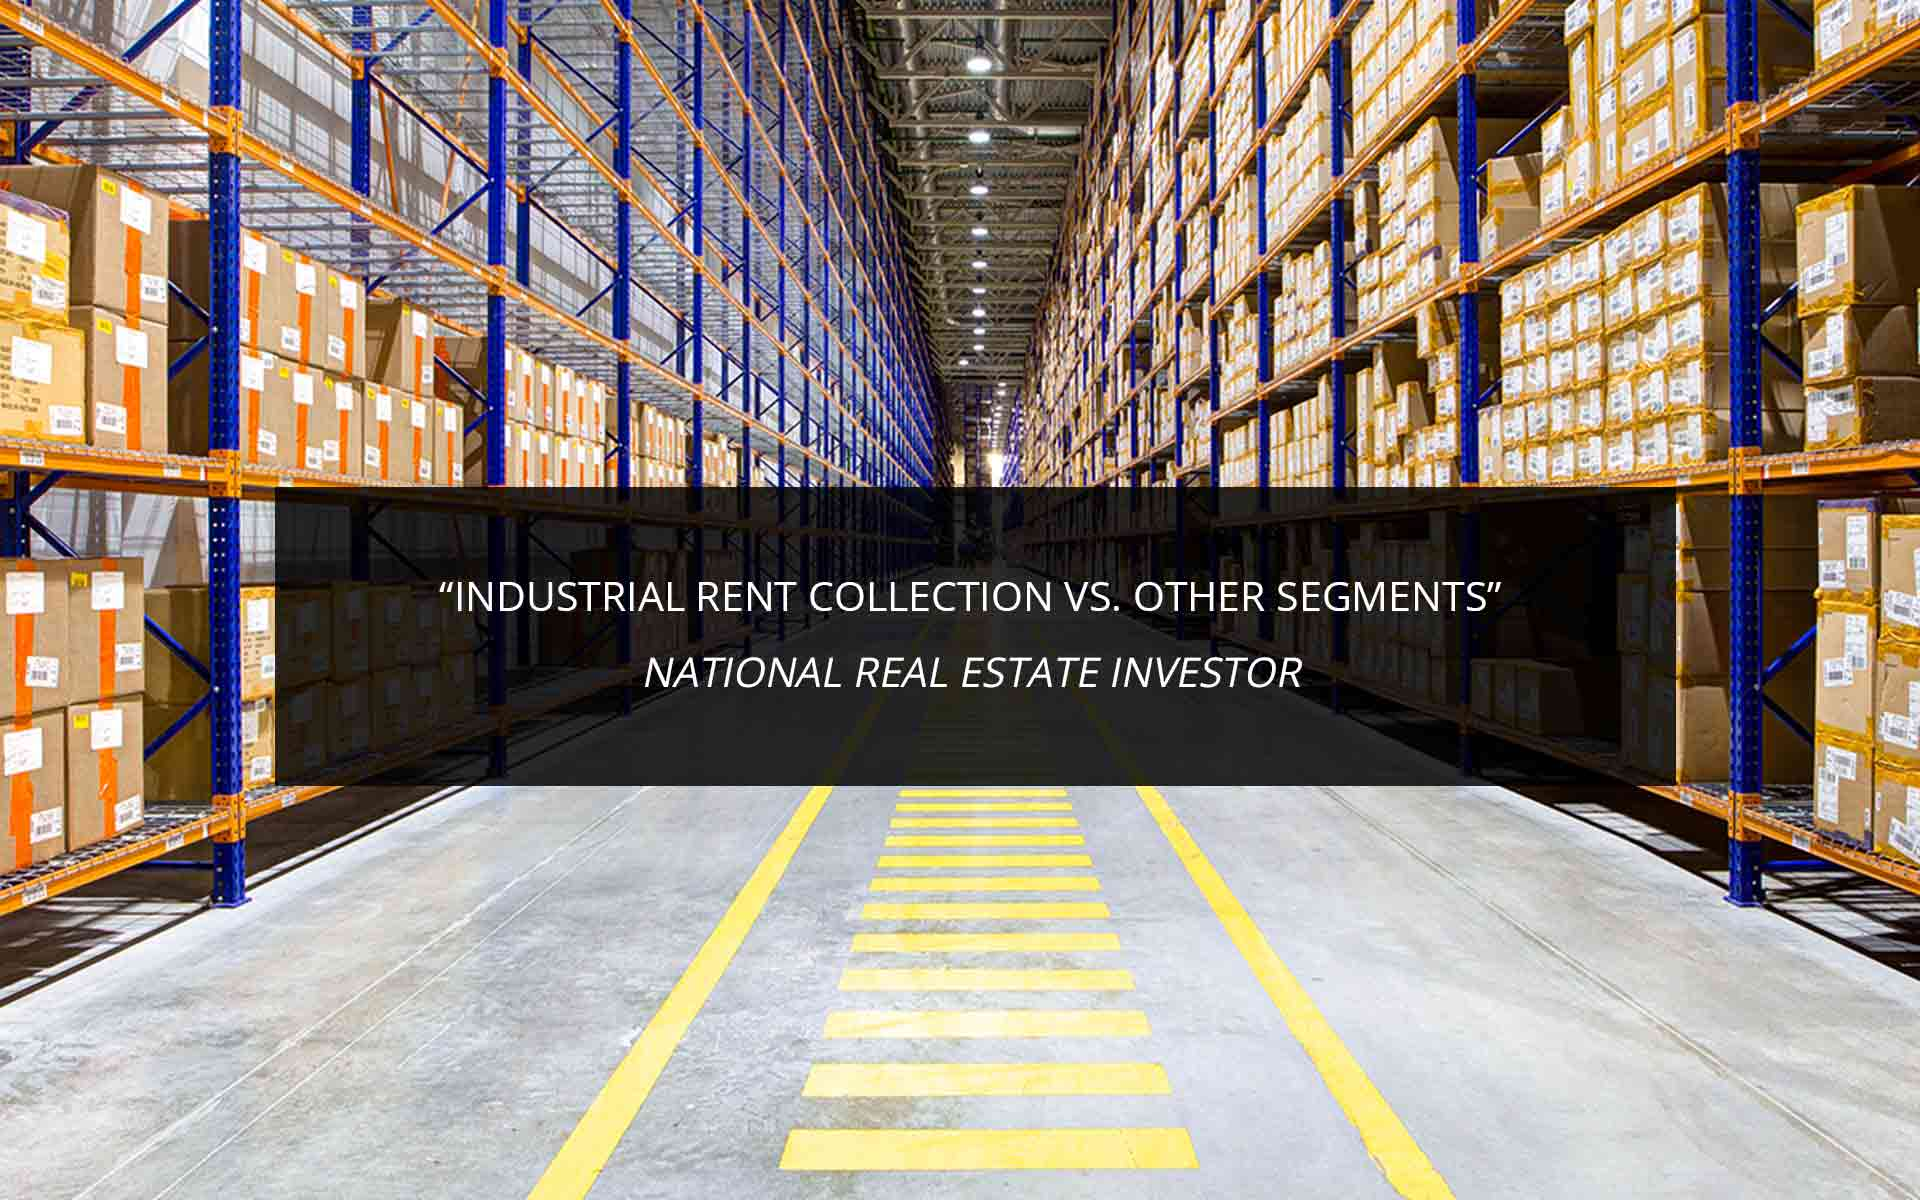 Industrial Rent Collection vs. Other Segments